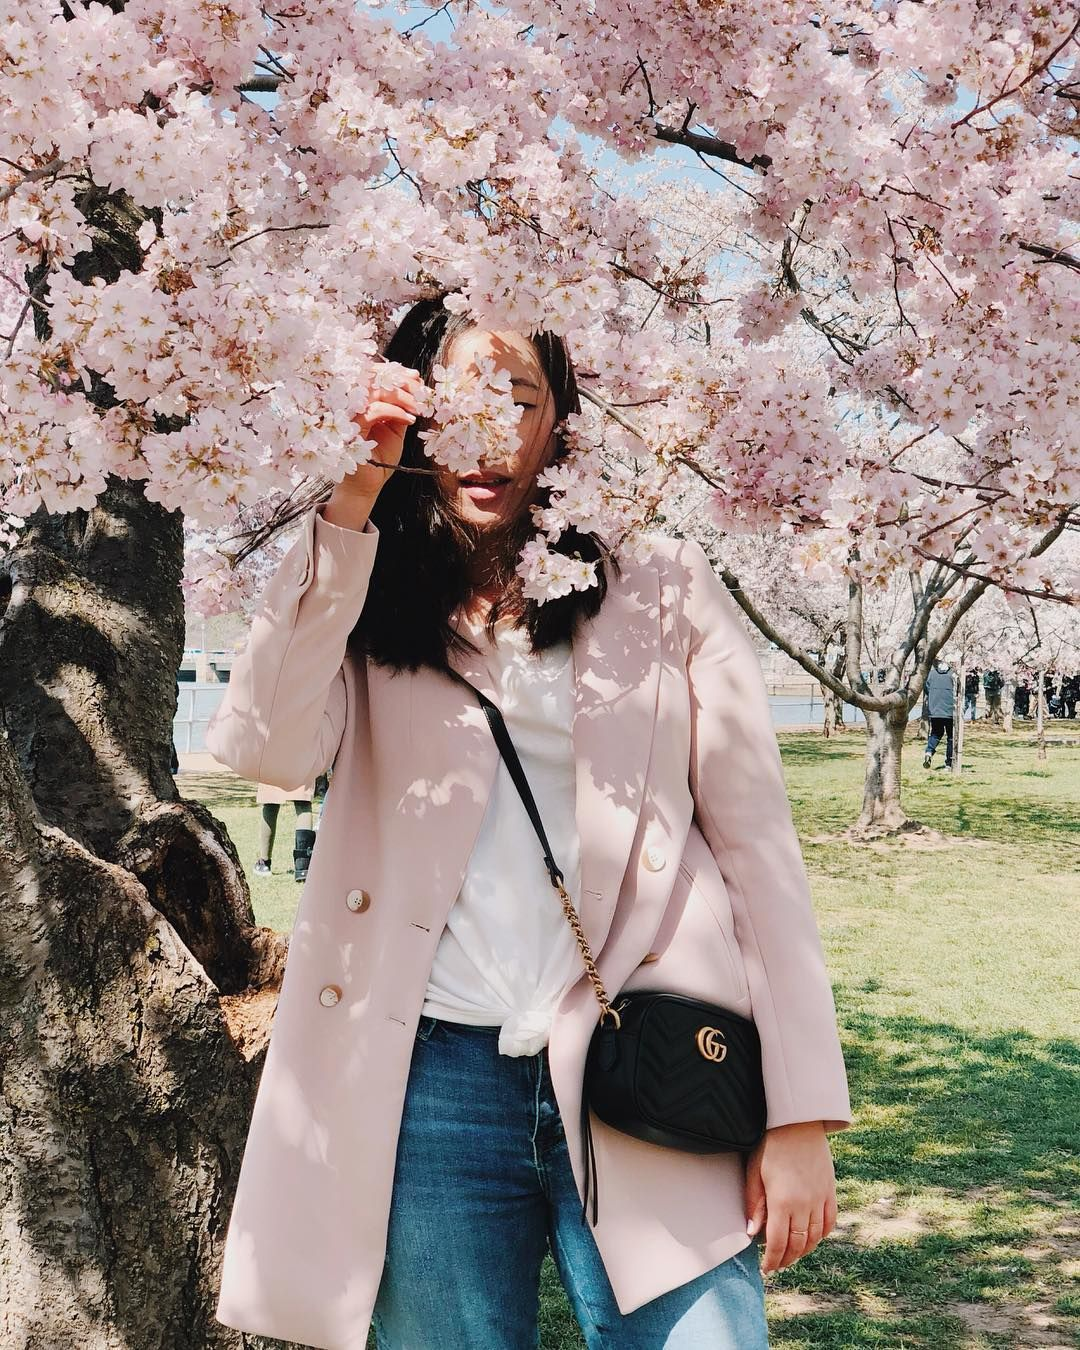 5 Habits Preventing You From Getting Over Your Ex Spring Outfits Japan Spring Photoshoot Japan Spring Fashion